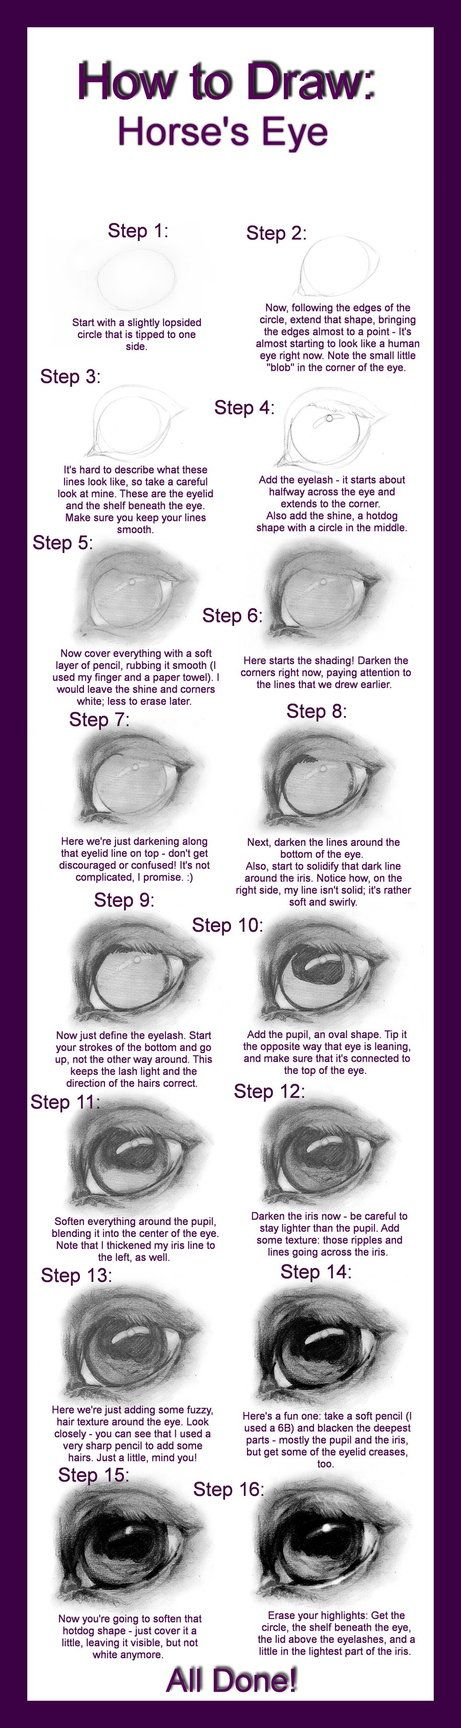 Top 10 Punto Medio Noticias | How To Draw A Realistic Horse Eye